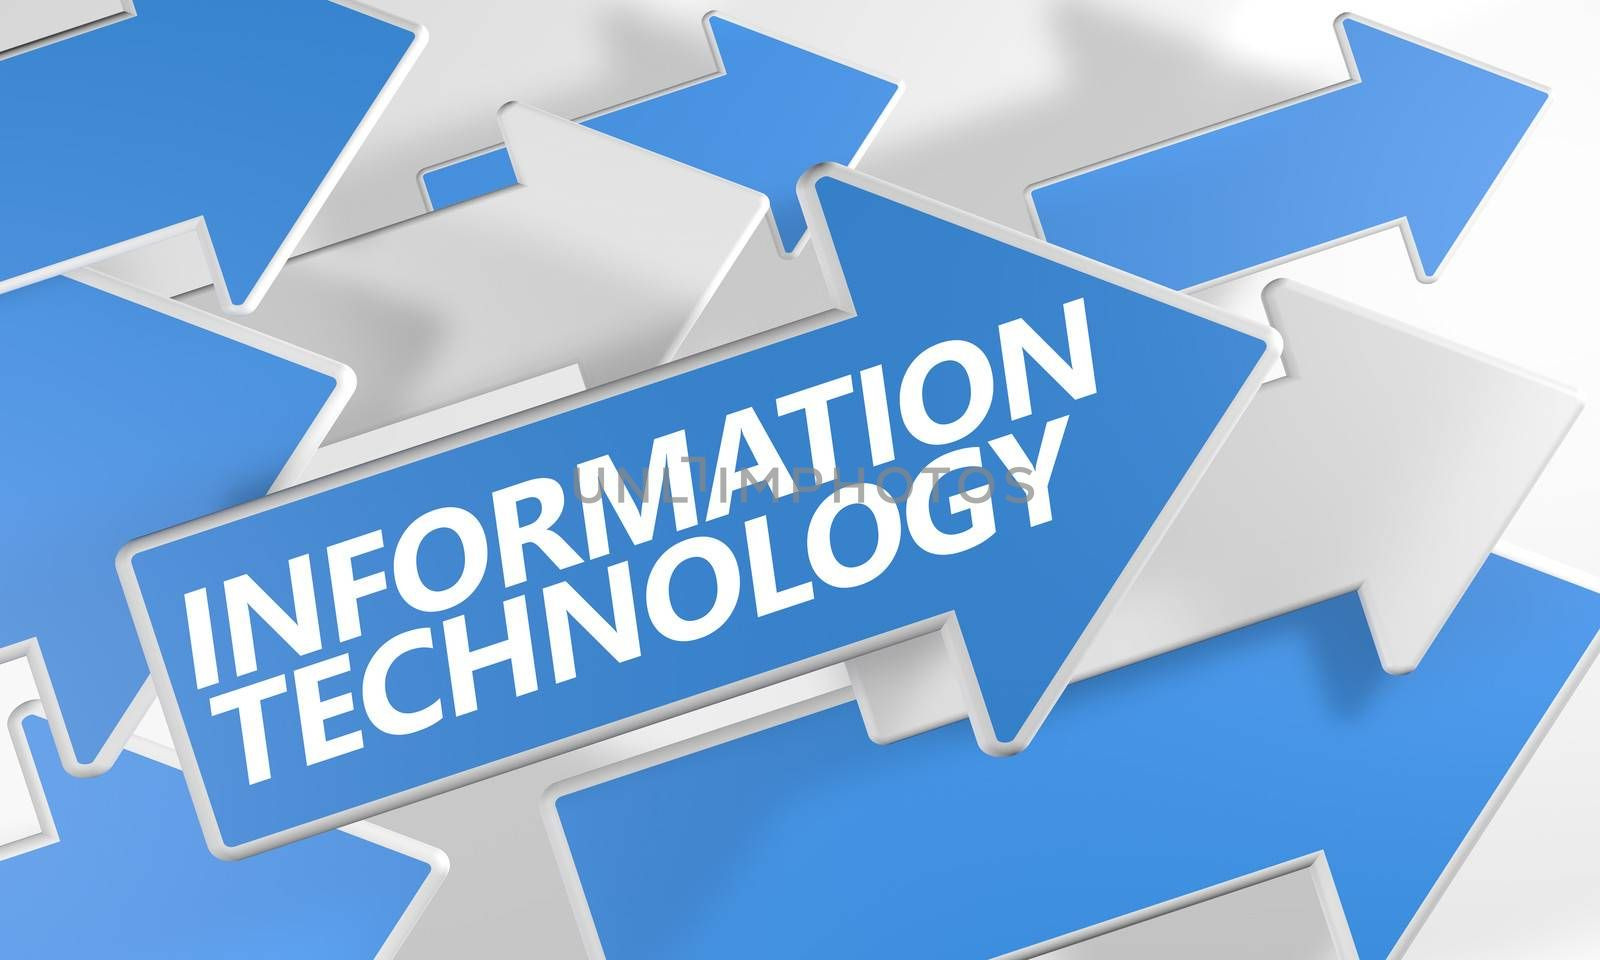 Information Technology 3d render concept with blue and white arrows flying over a white background.